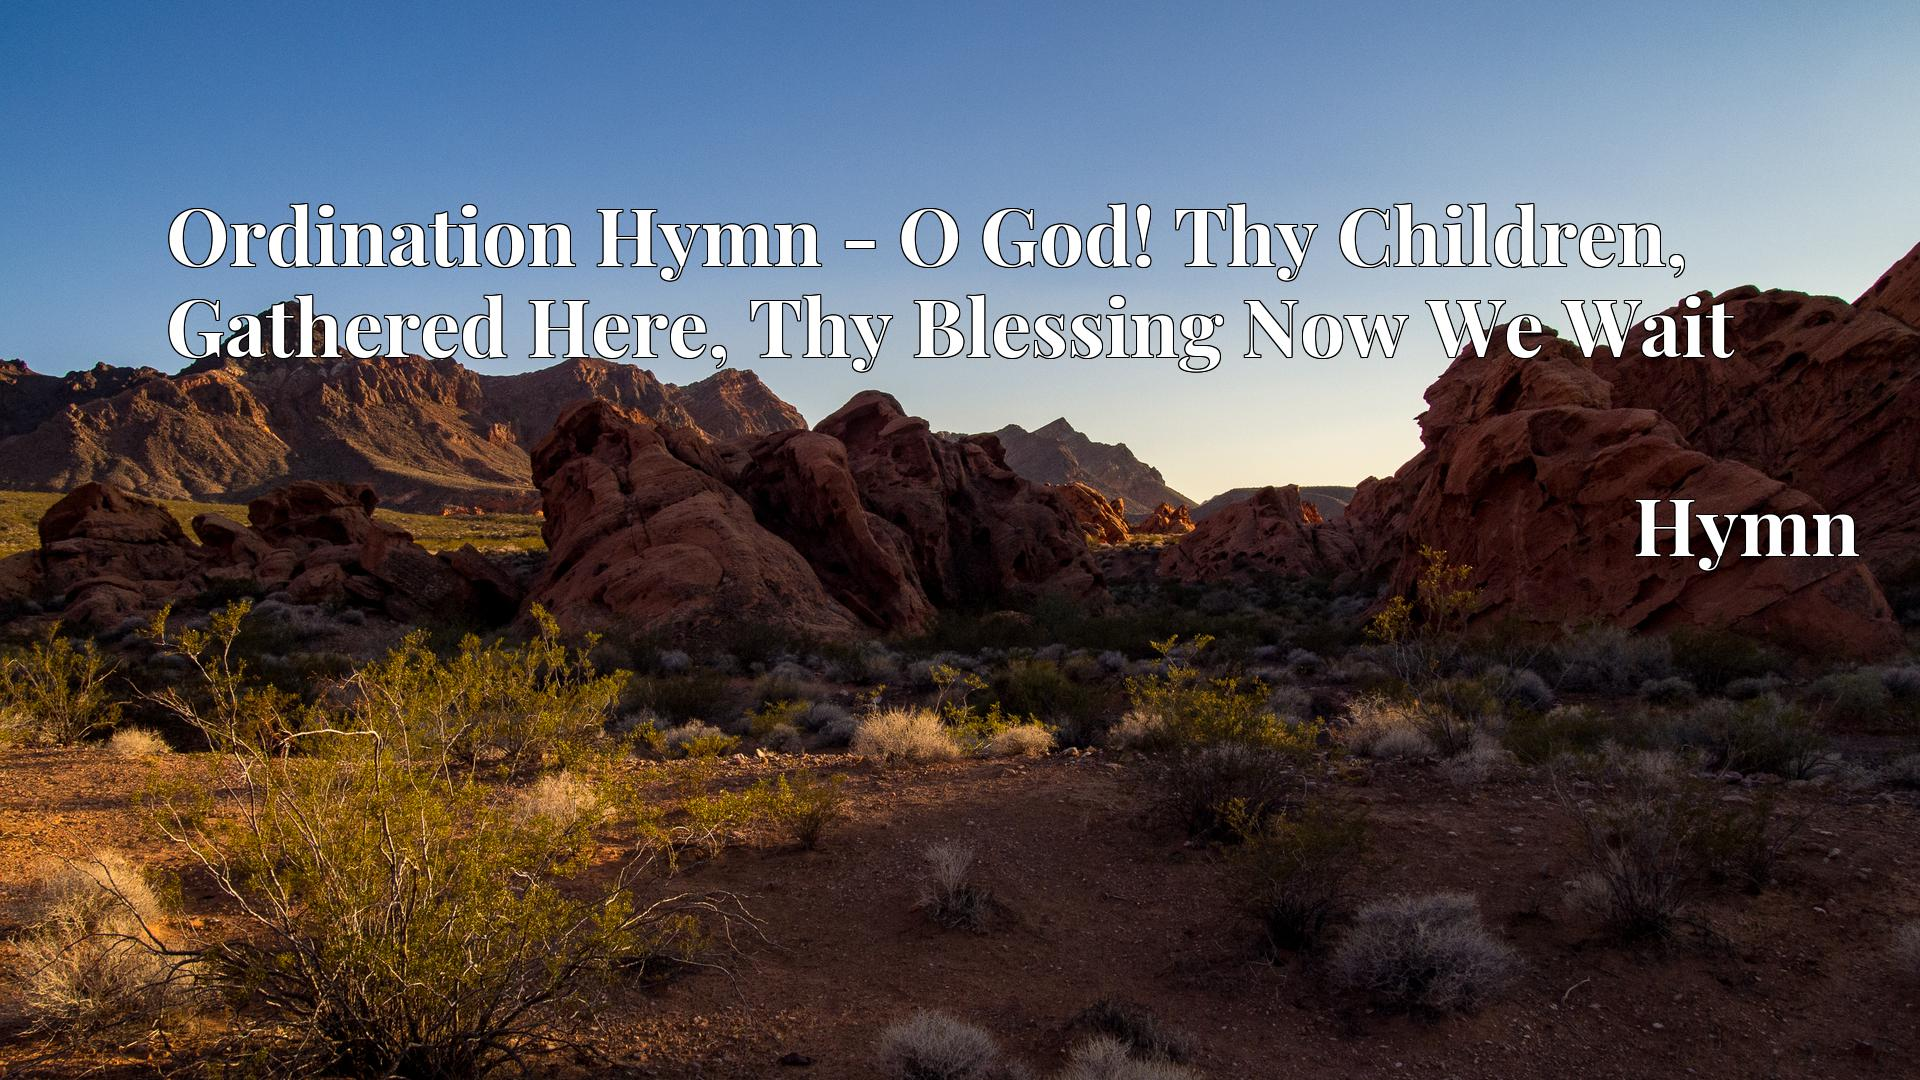 Ordination Hymn - O God! Thy Children, Gathered Here, Thy Blessing Now We Wait - Hymn